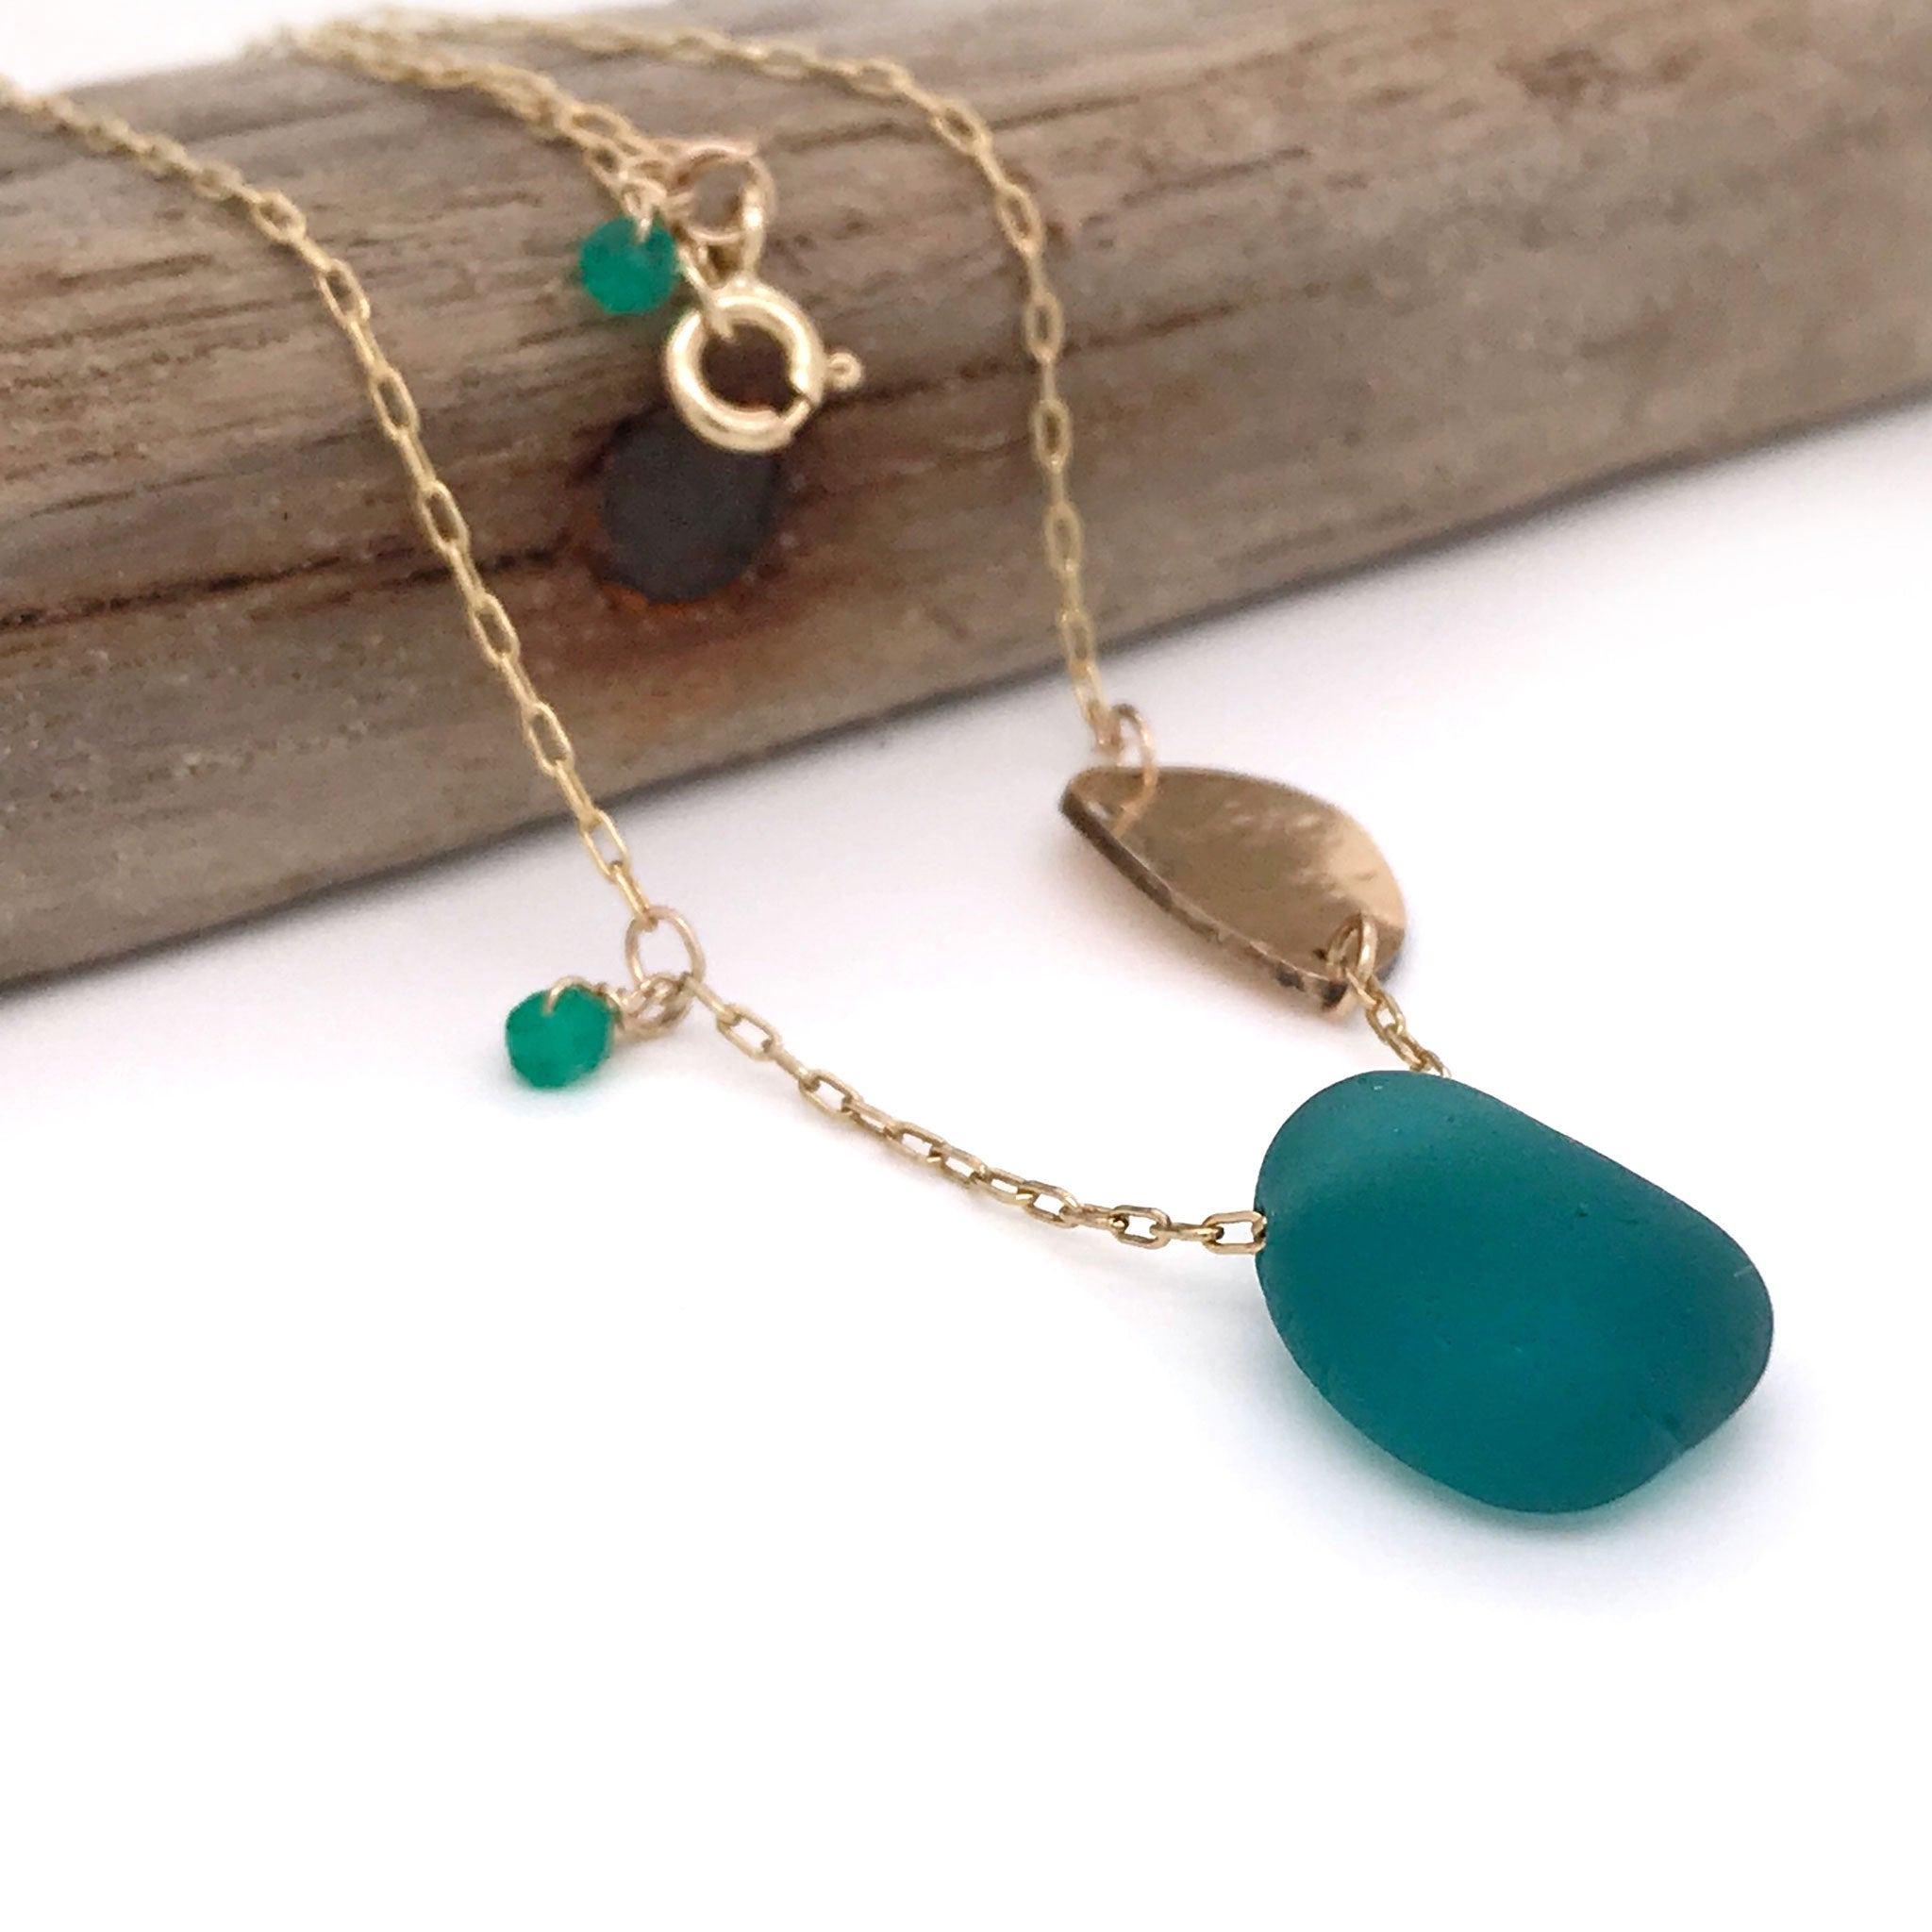 gold necklace with teal seaglass and leaf charm kriket Broadhurst jewellery